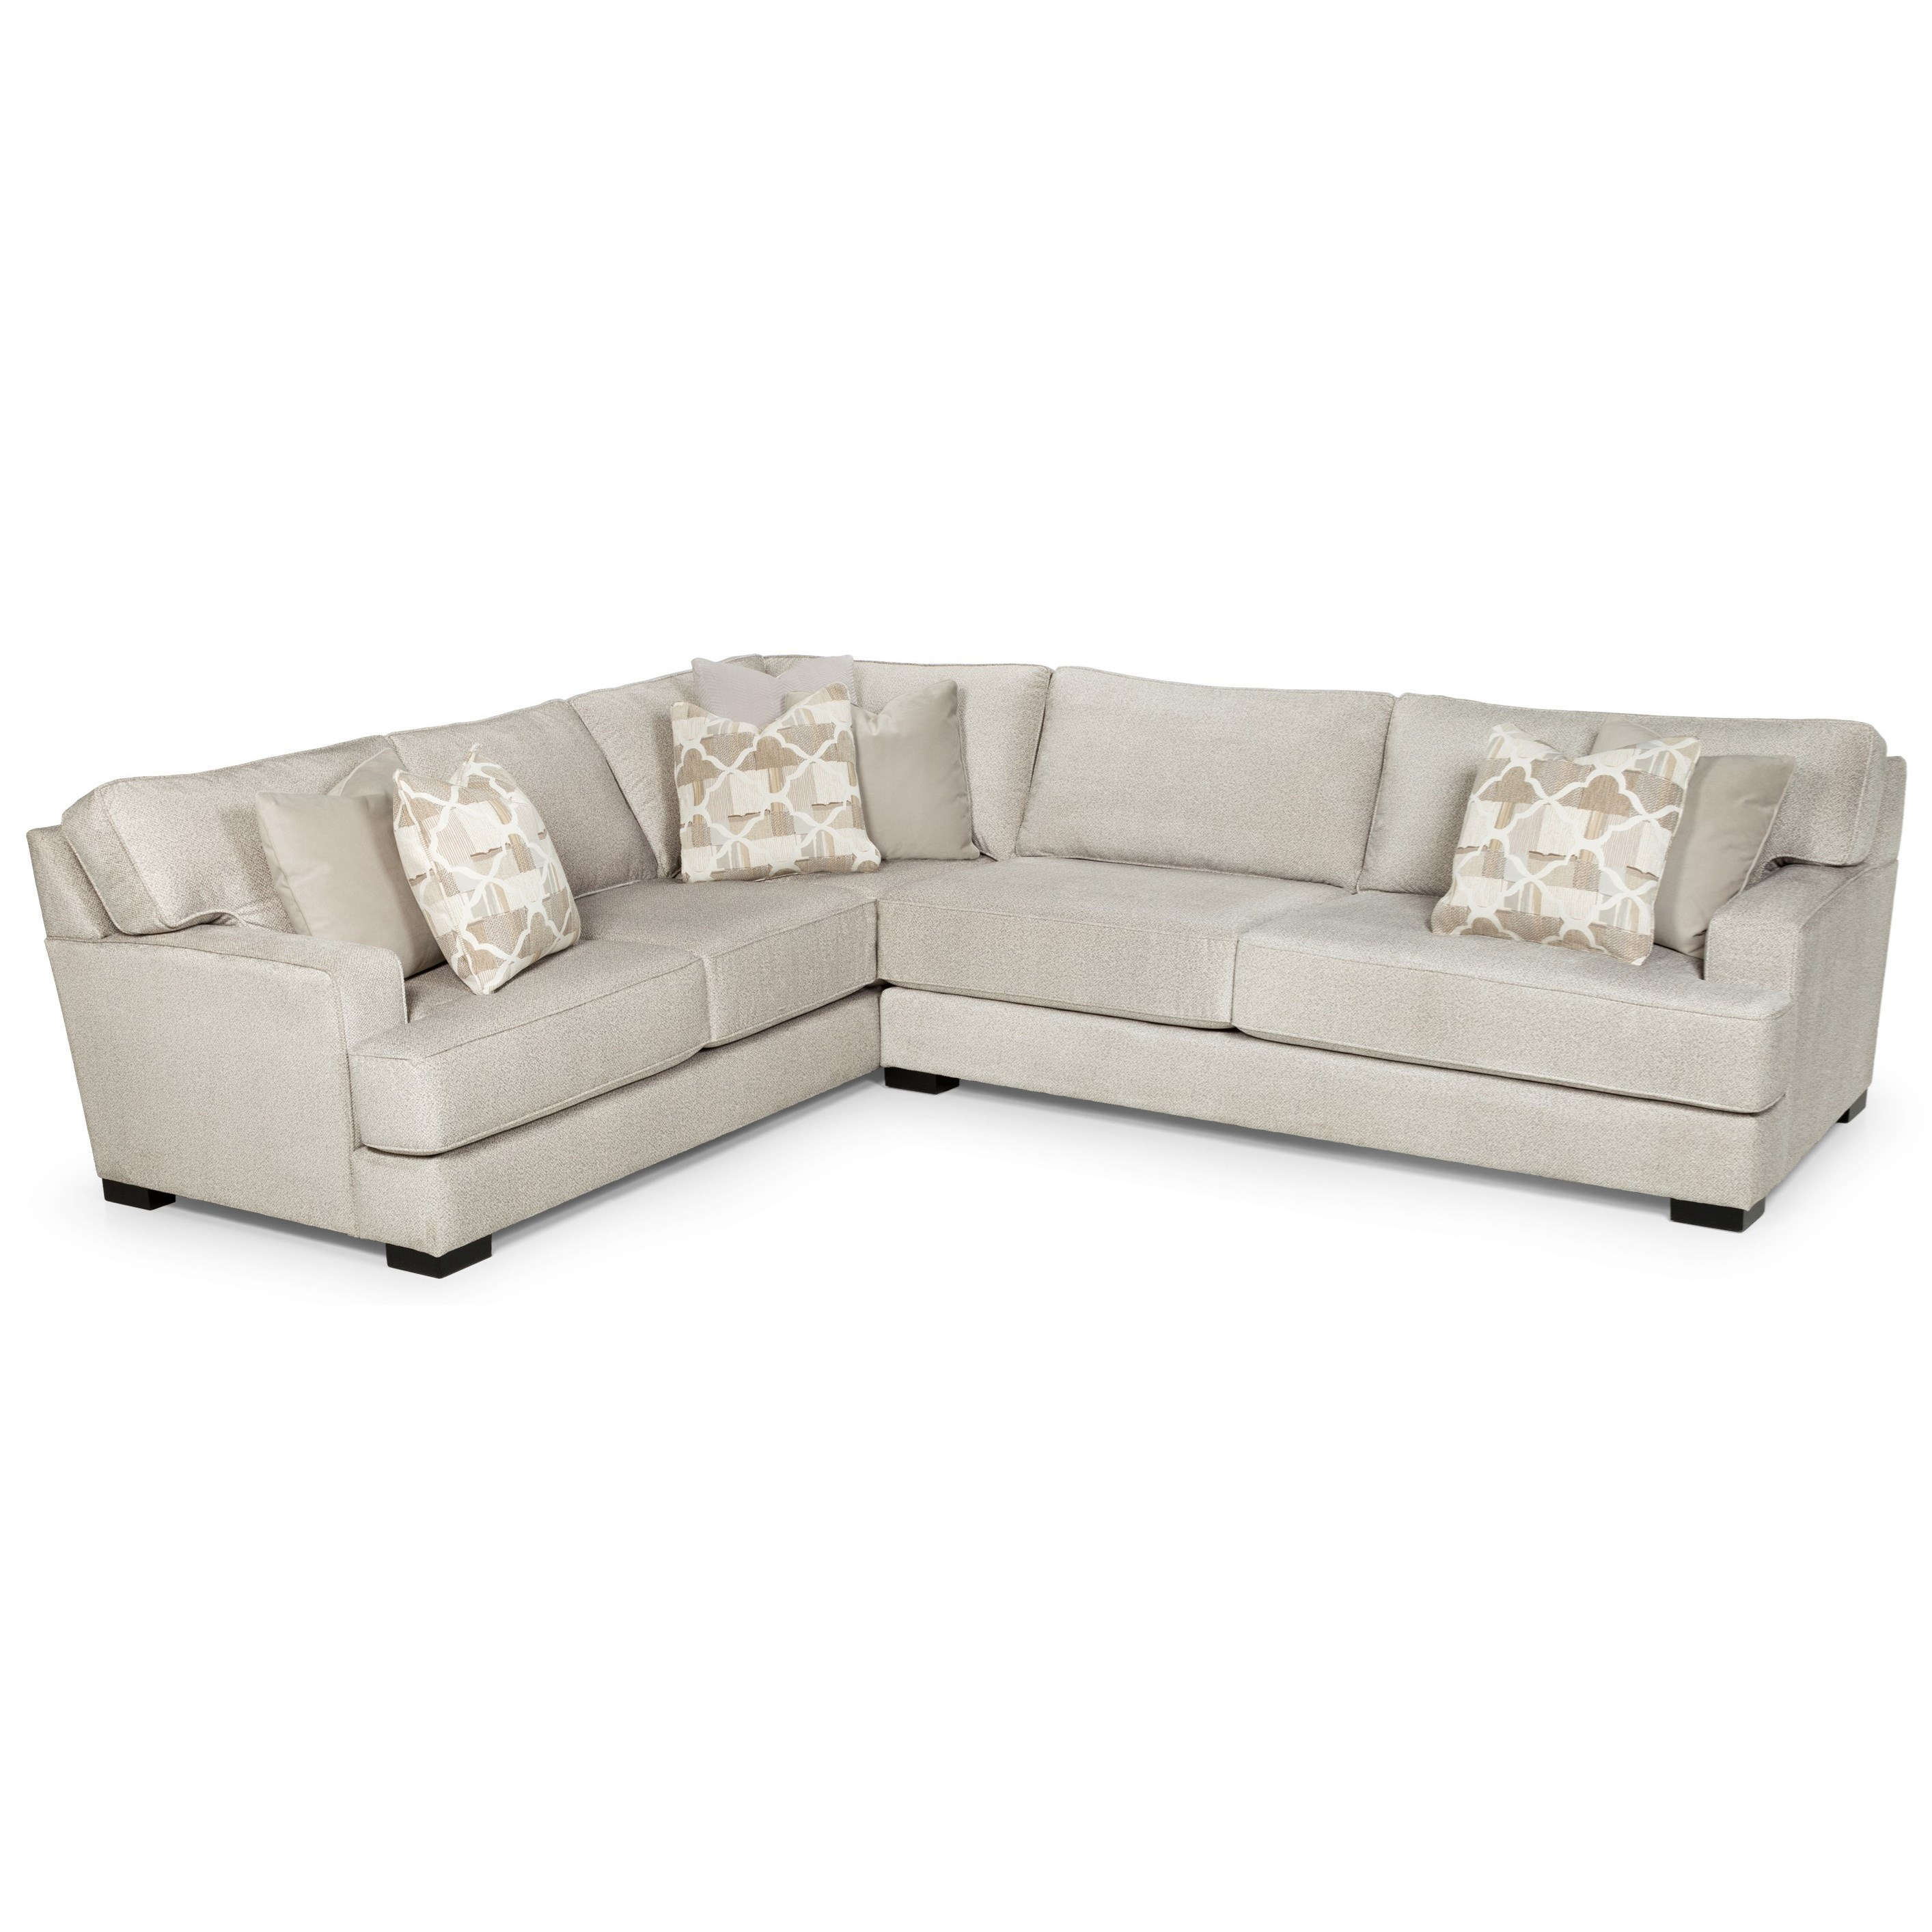 417 Sectional by Stanton at Wilson's Furniture